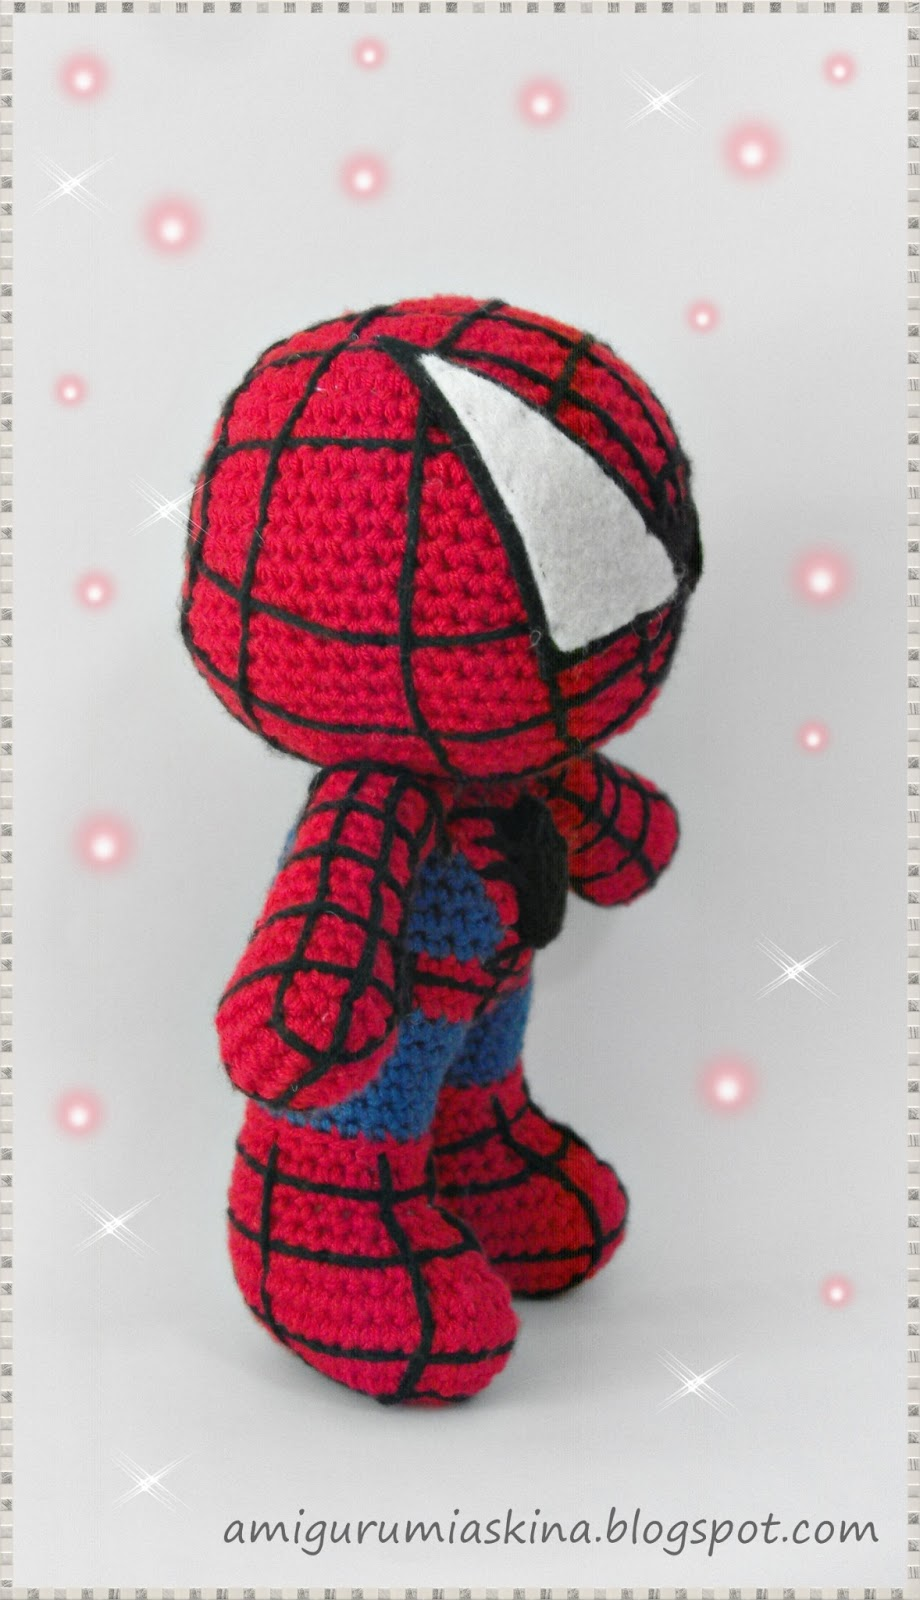 Amigurumi ?r?mcek Adam- Amigurumi Spiderman - Tiny Mini Design